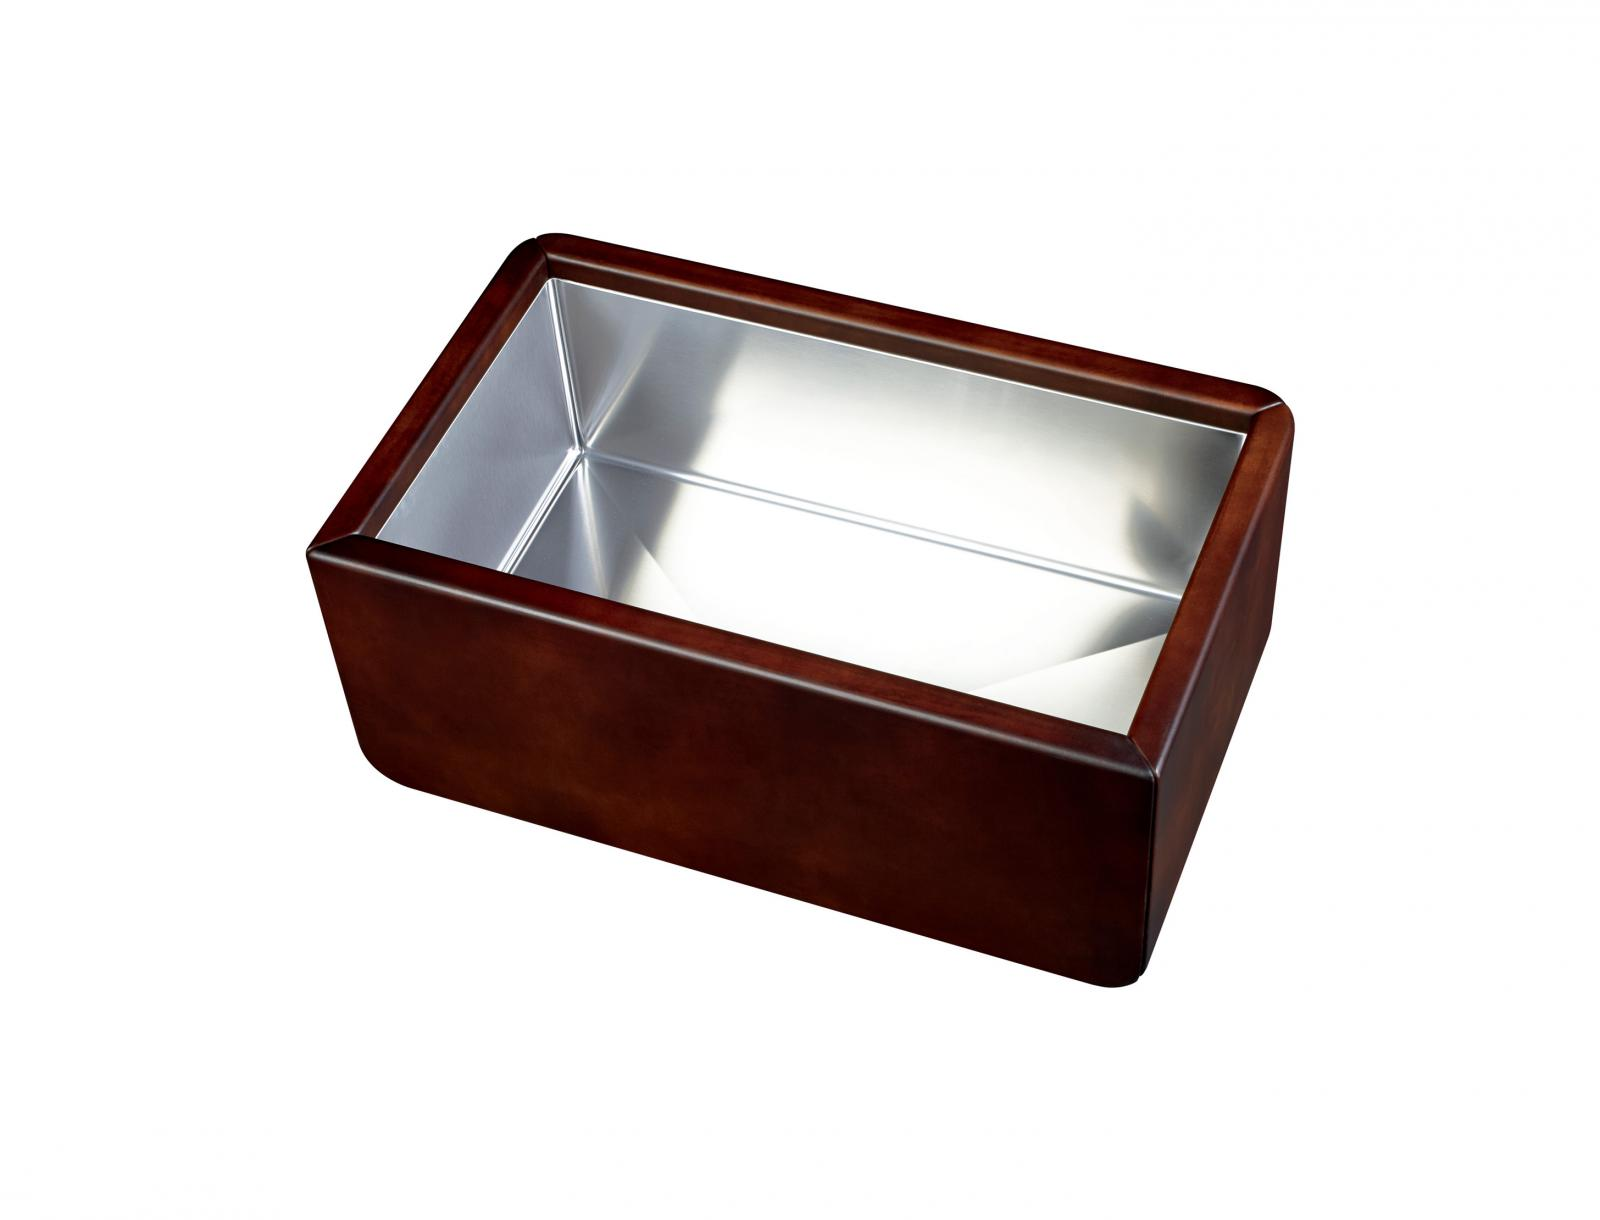 High-quality sink Dagobert brown - single bowl, leather - ambience 1